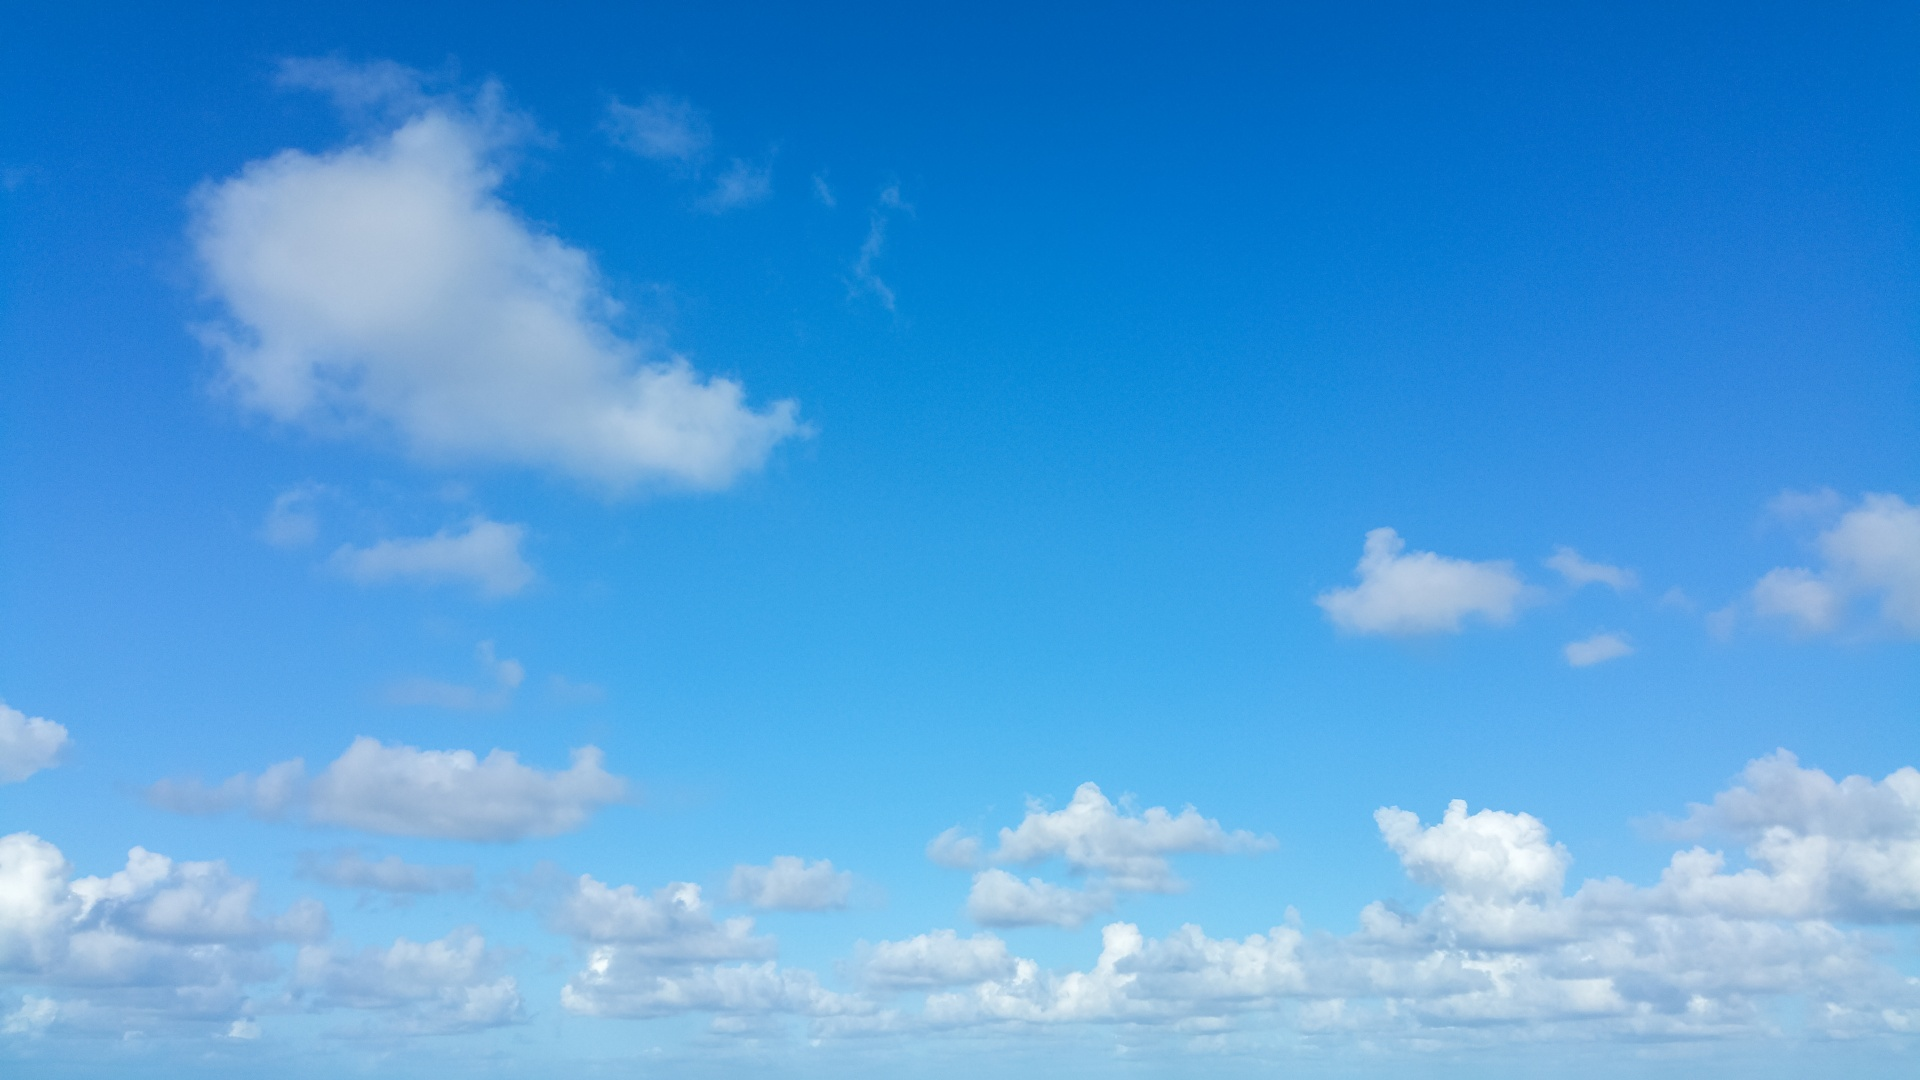 blue-sky-and-whtie-clouds-1457775320B2G